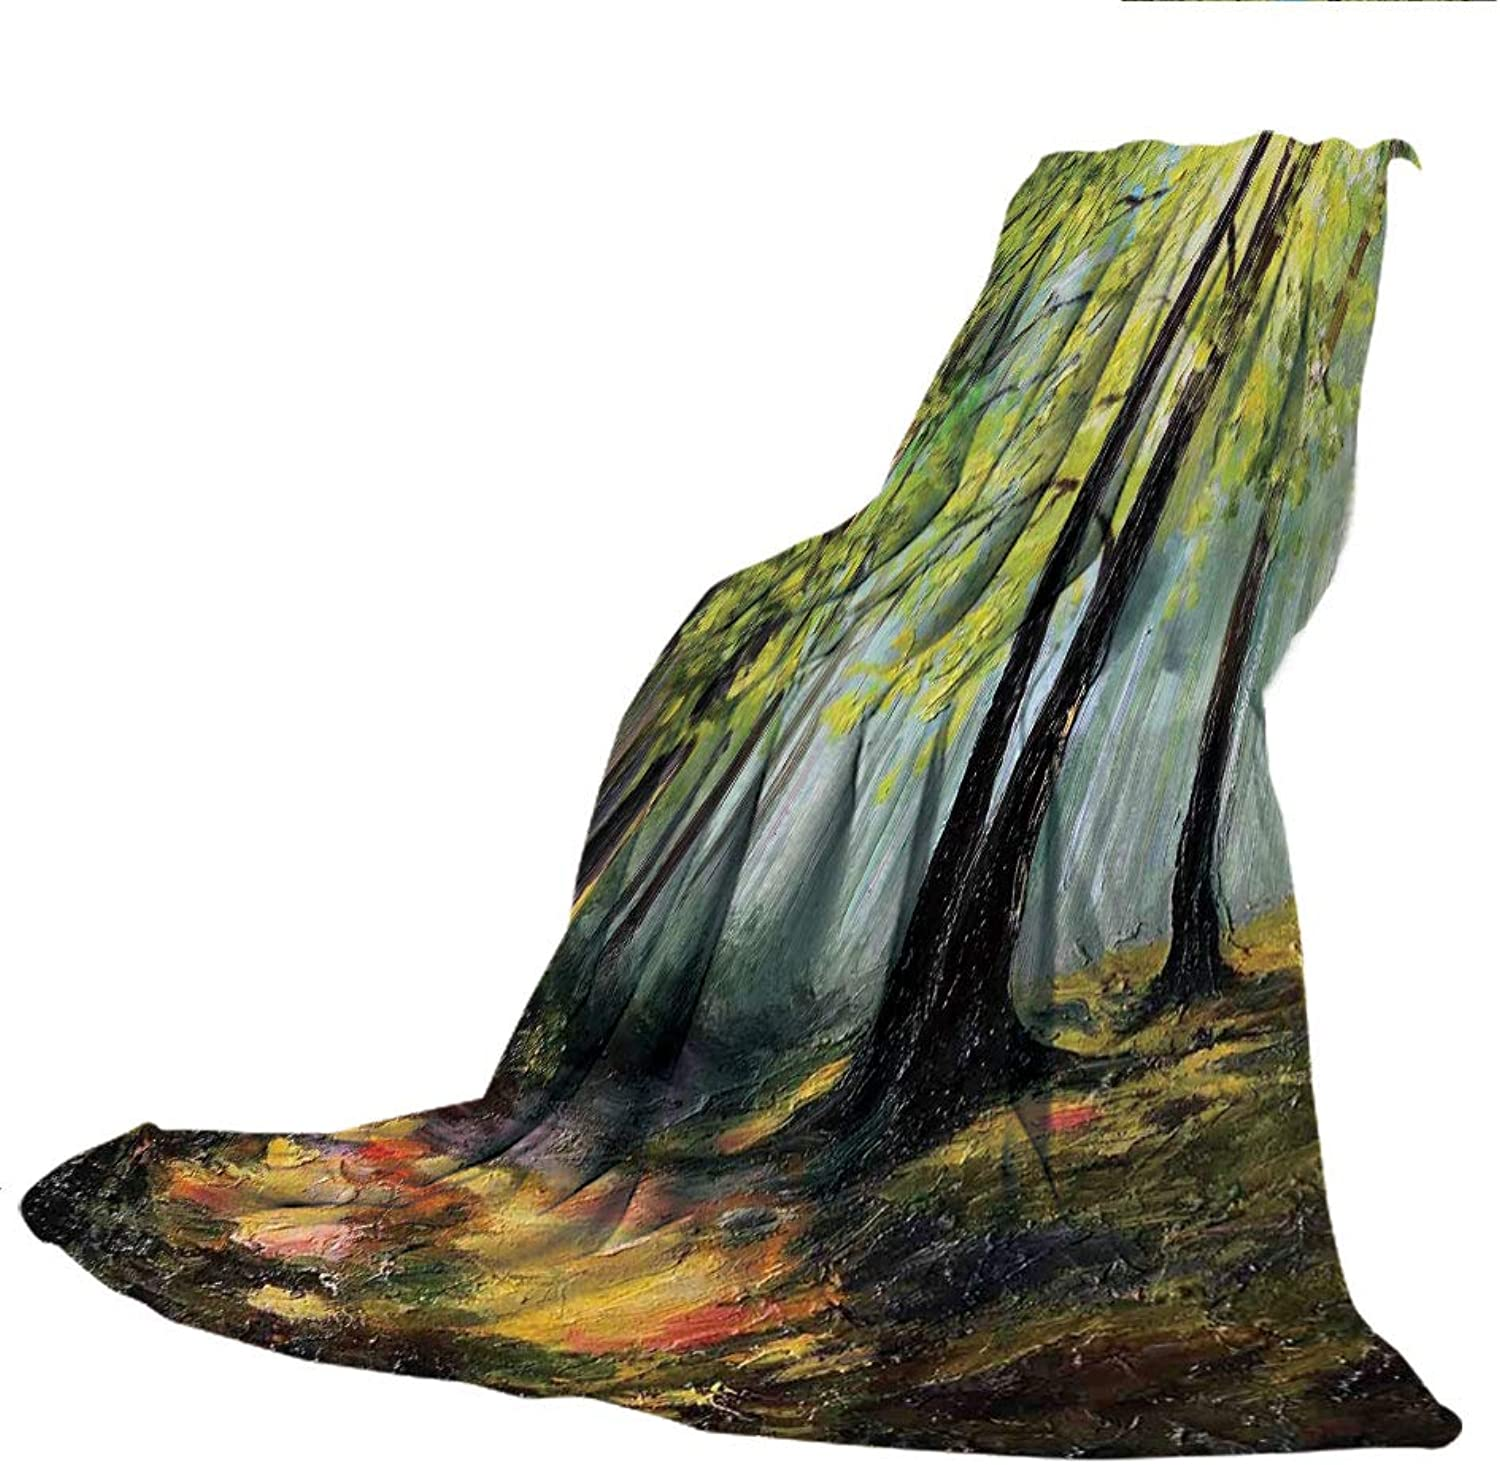 SCOCICI SuperThick Flannel Warm Sofa or Bed Blanket,Country Decor,Painting Landscape of a Forest Dark and Deep with Fresh colors in Autumn Nature Artsy Work,Multi,39.37  W x 59.06  H